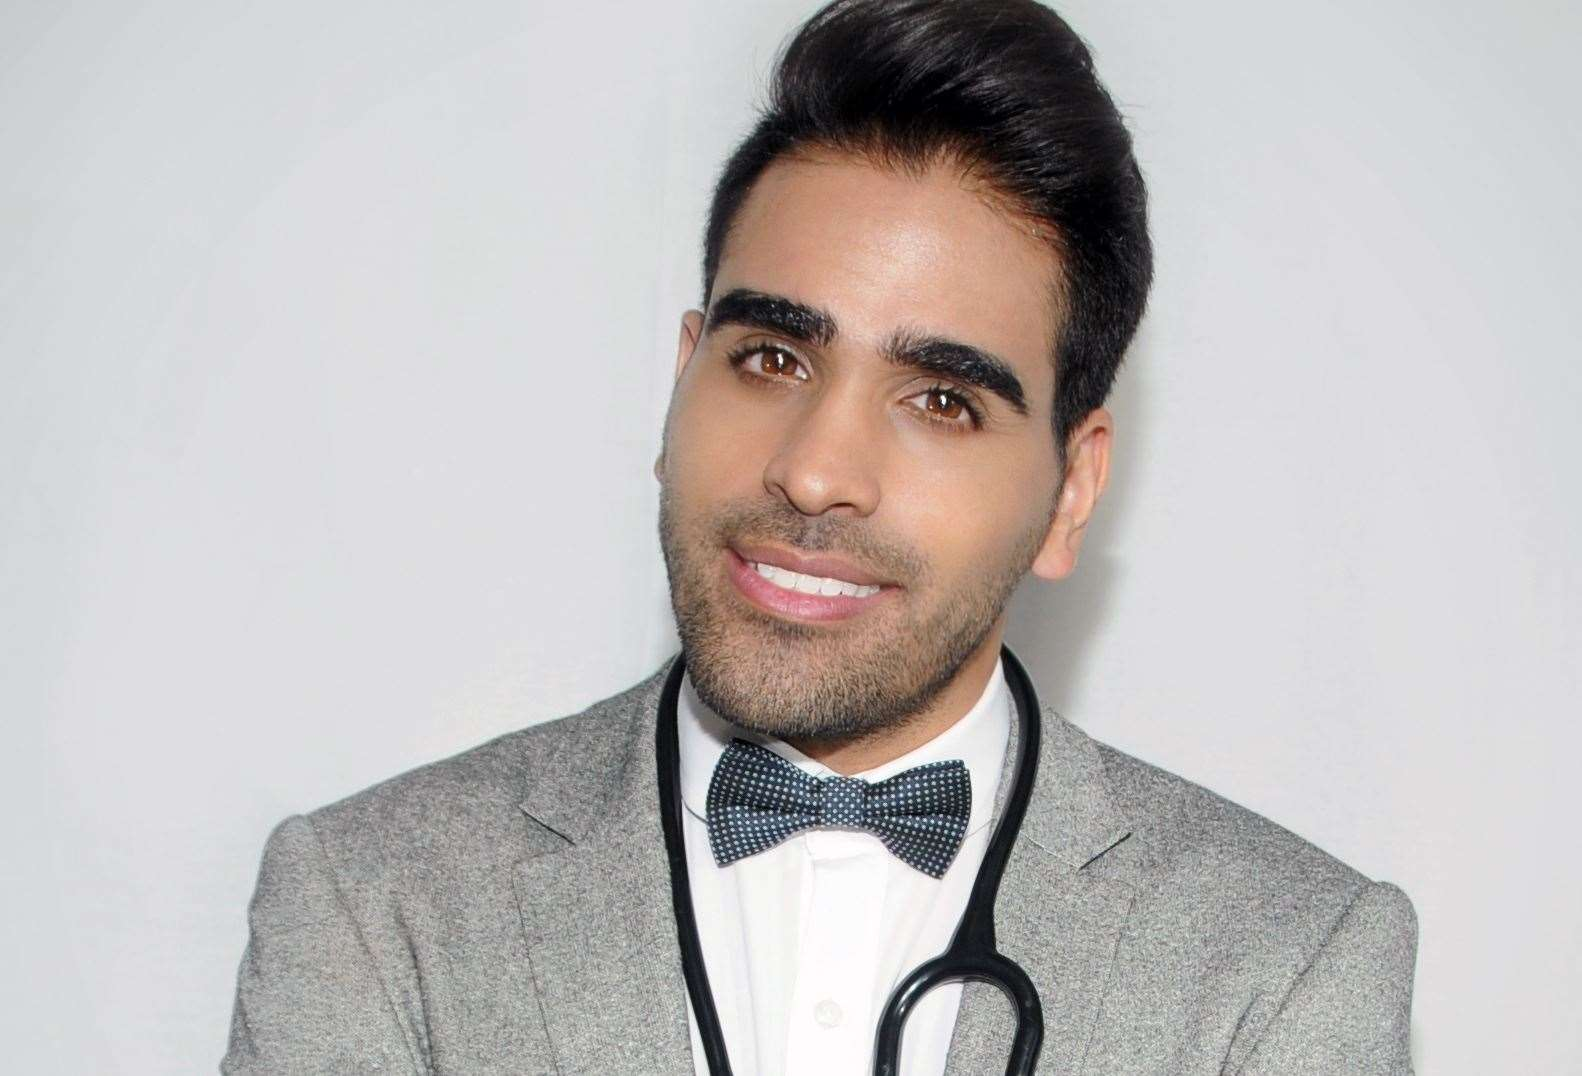 Dr Ranj will present a Get Well Soon special